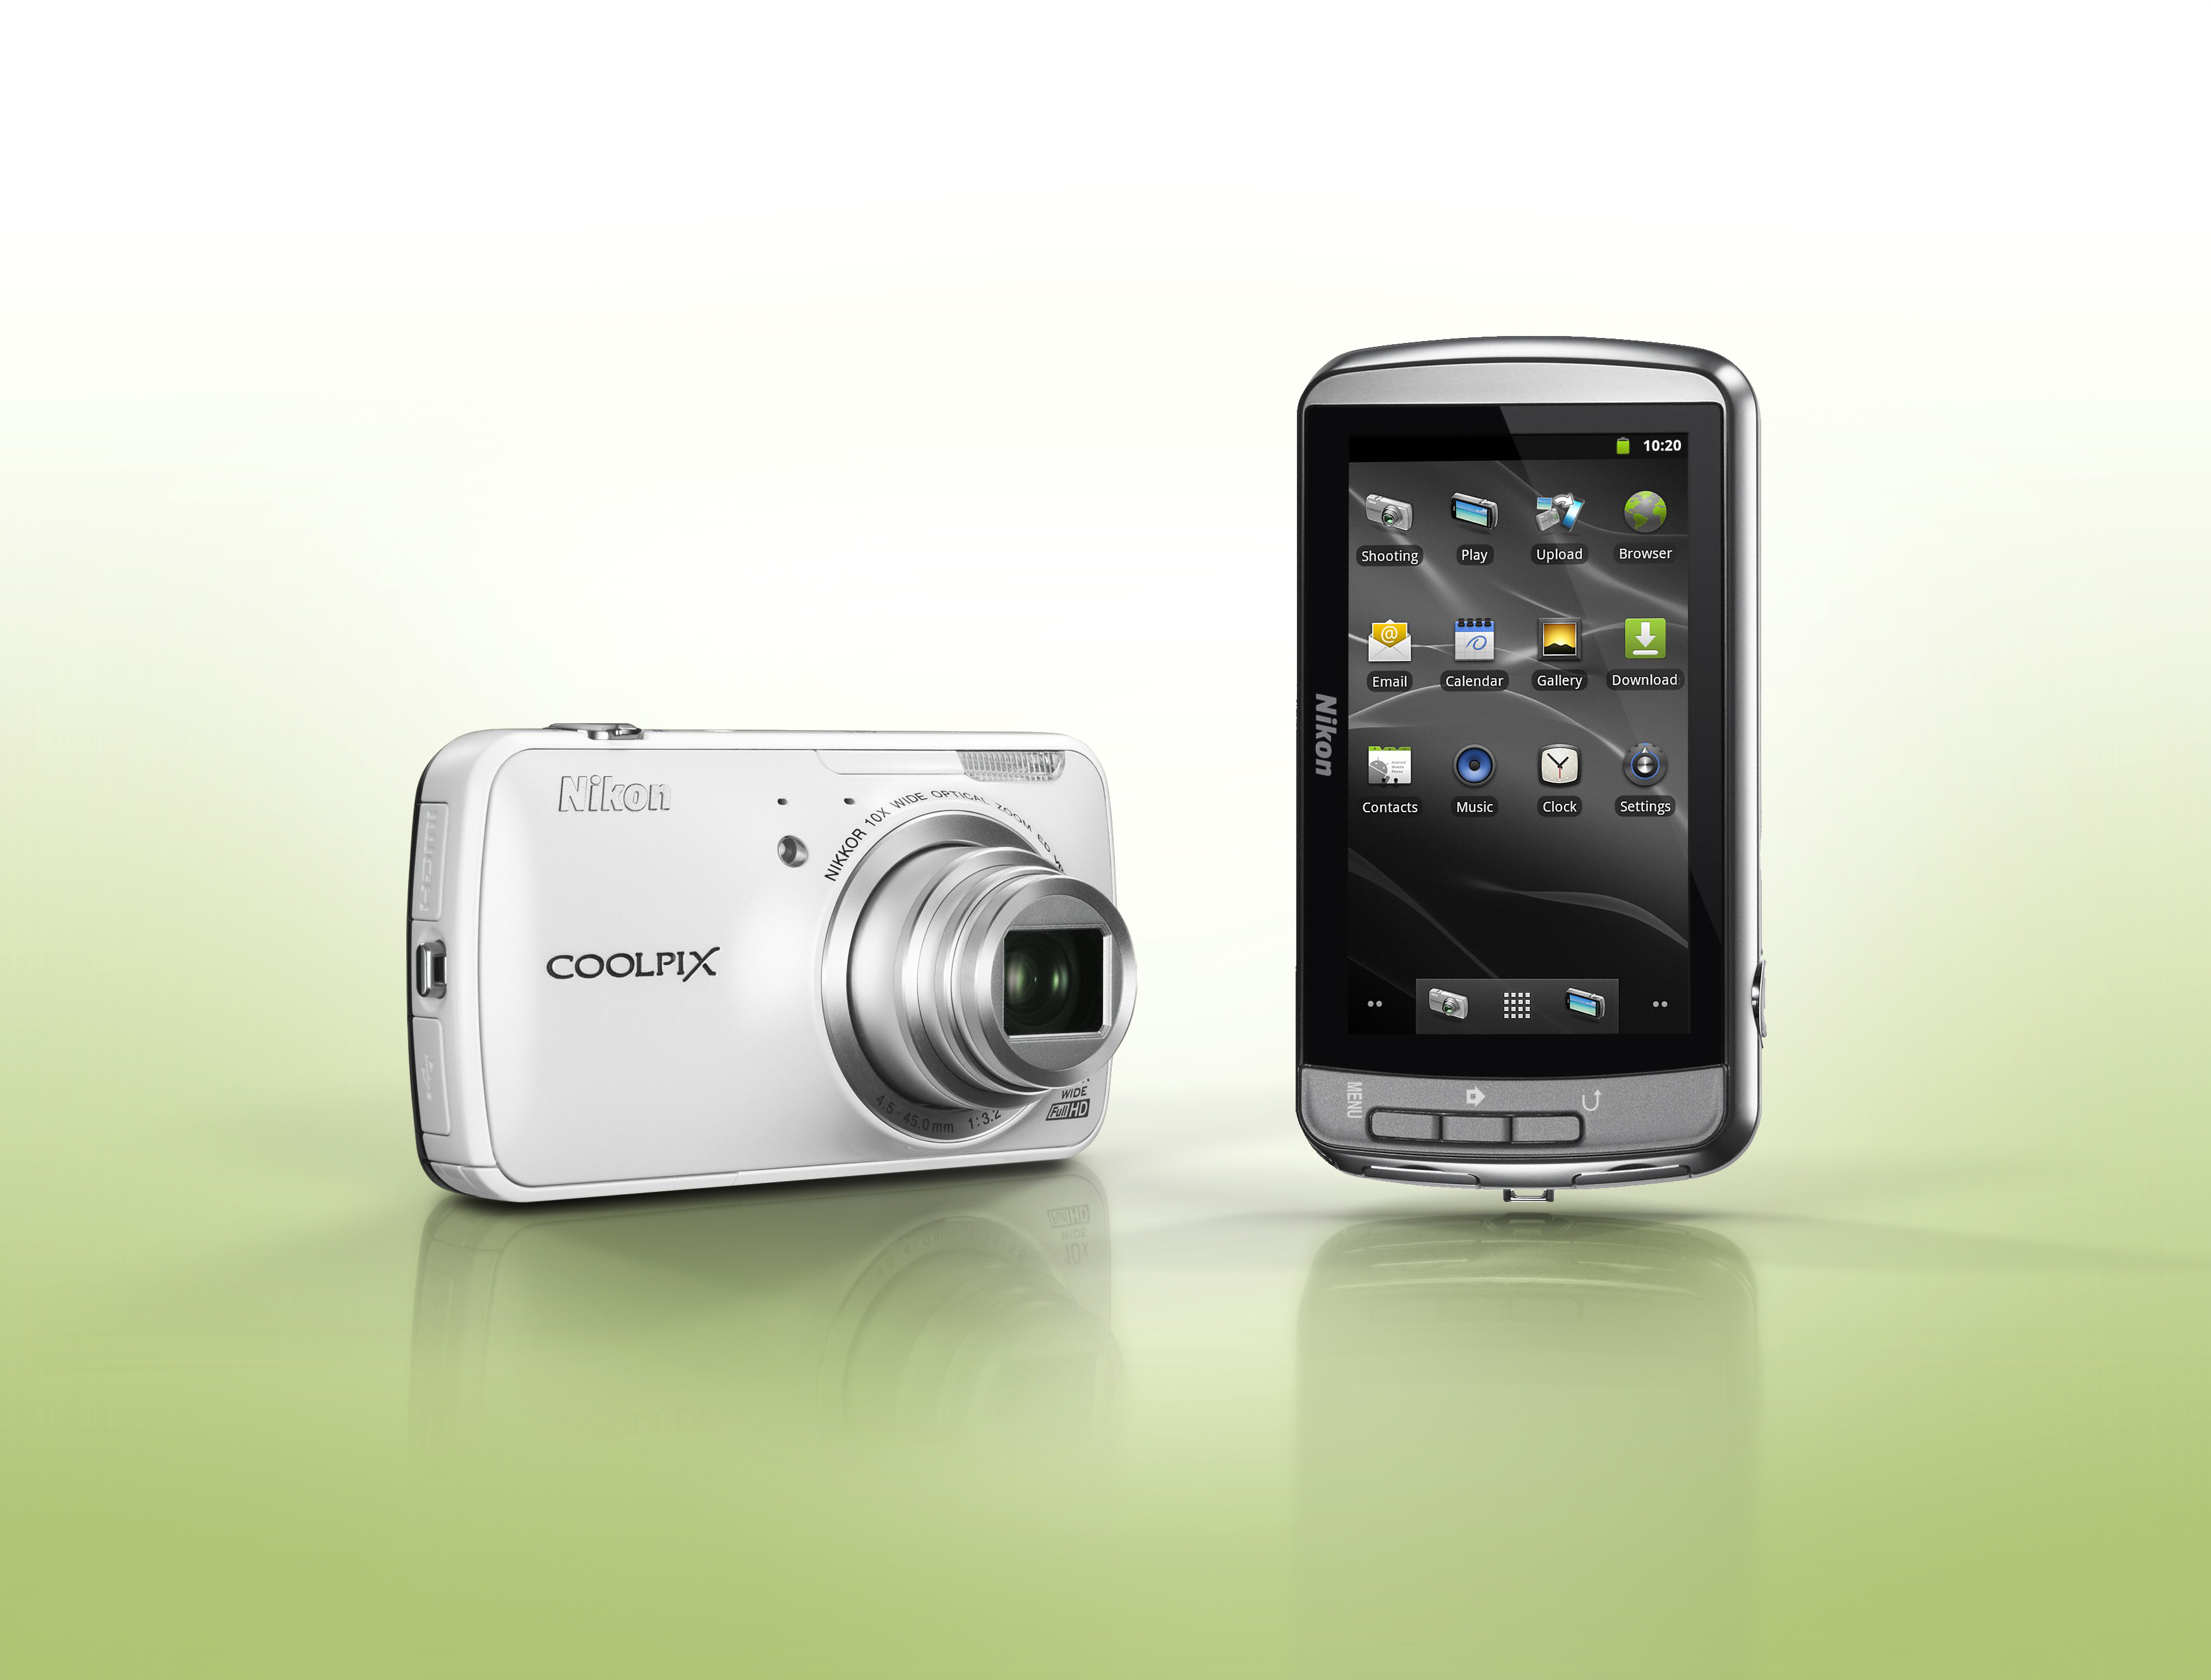 Nikon Launches Nikon Coolpix S800c With Android OS ...